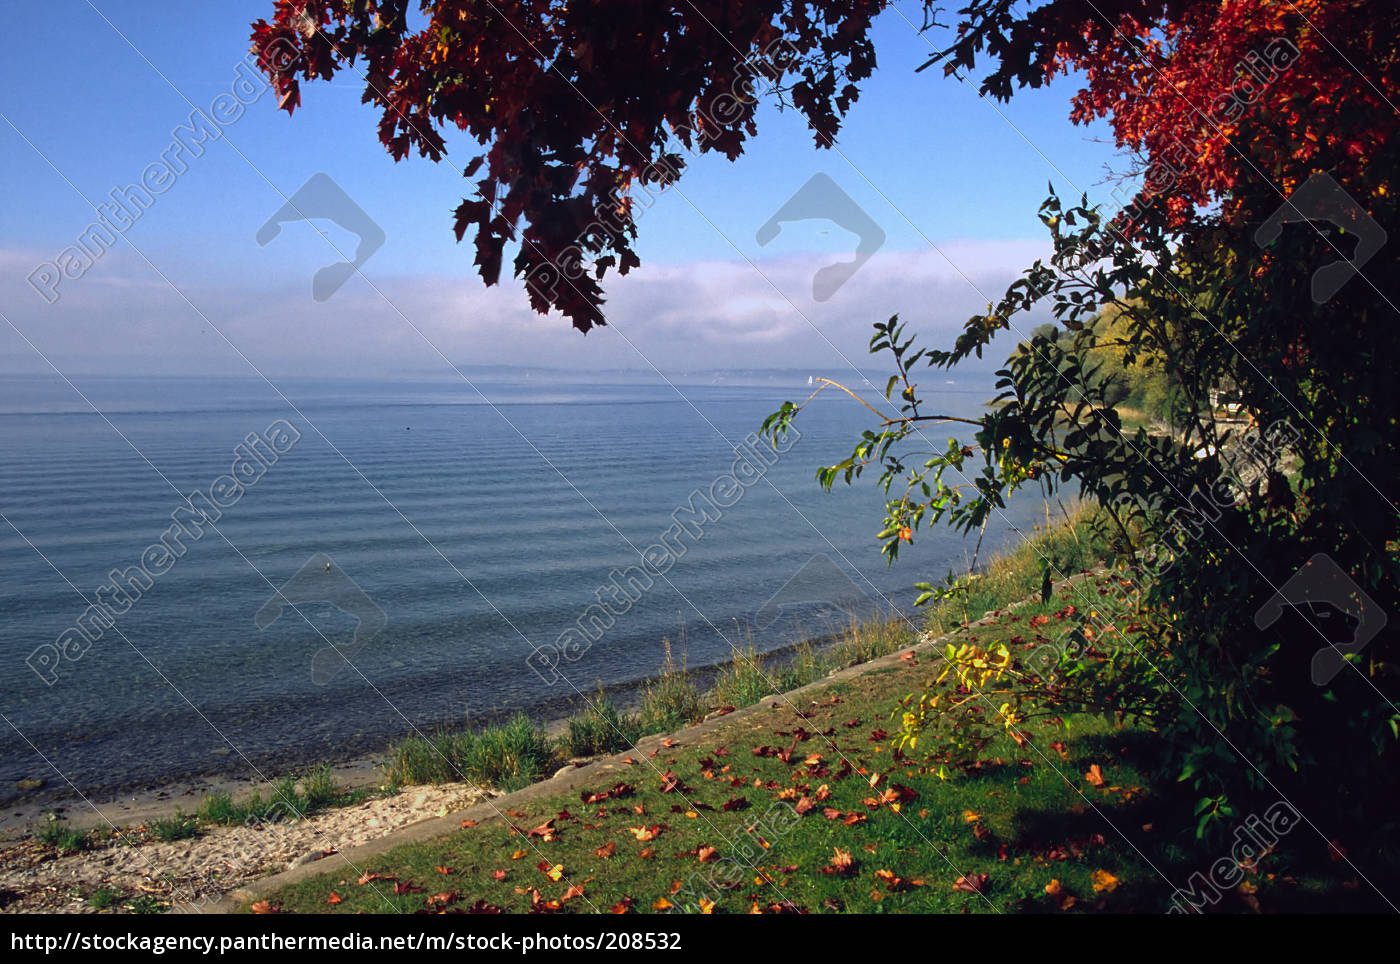 autumn, at, lake, constance - 208532